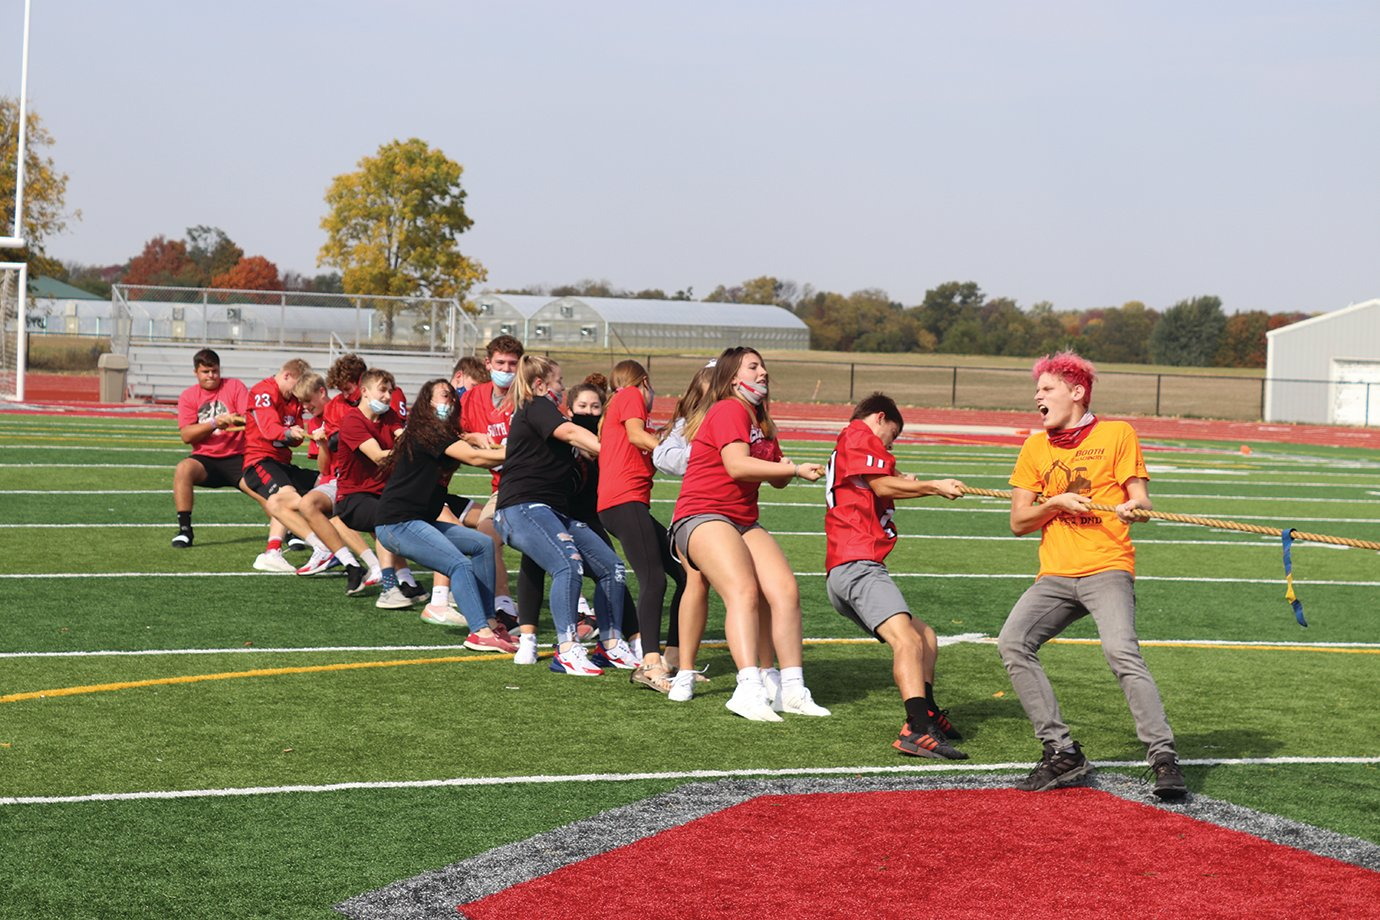 A tug-of-war competition ensues Friday between Southmont sophomores and freshmen.